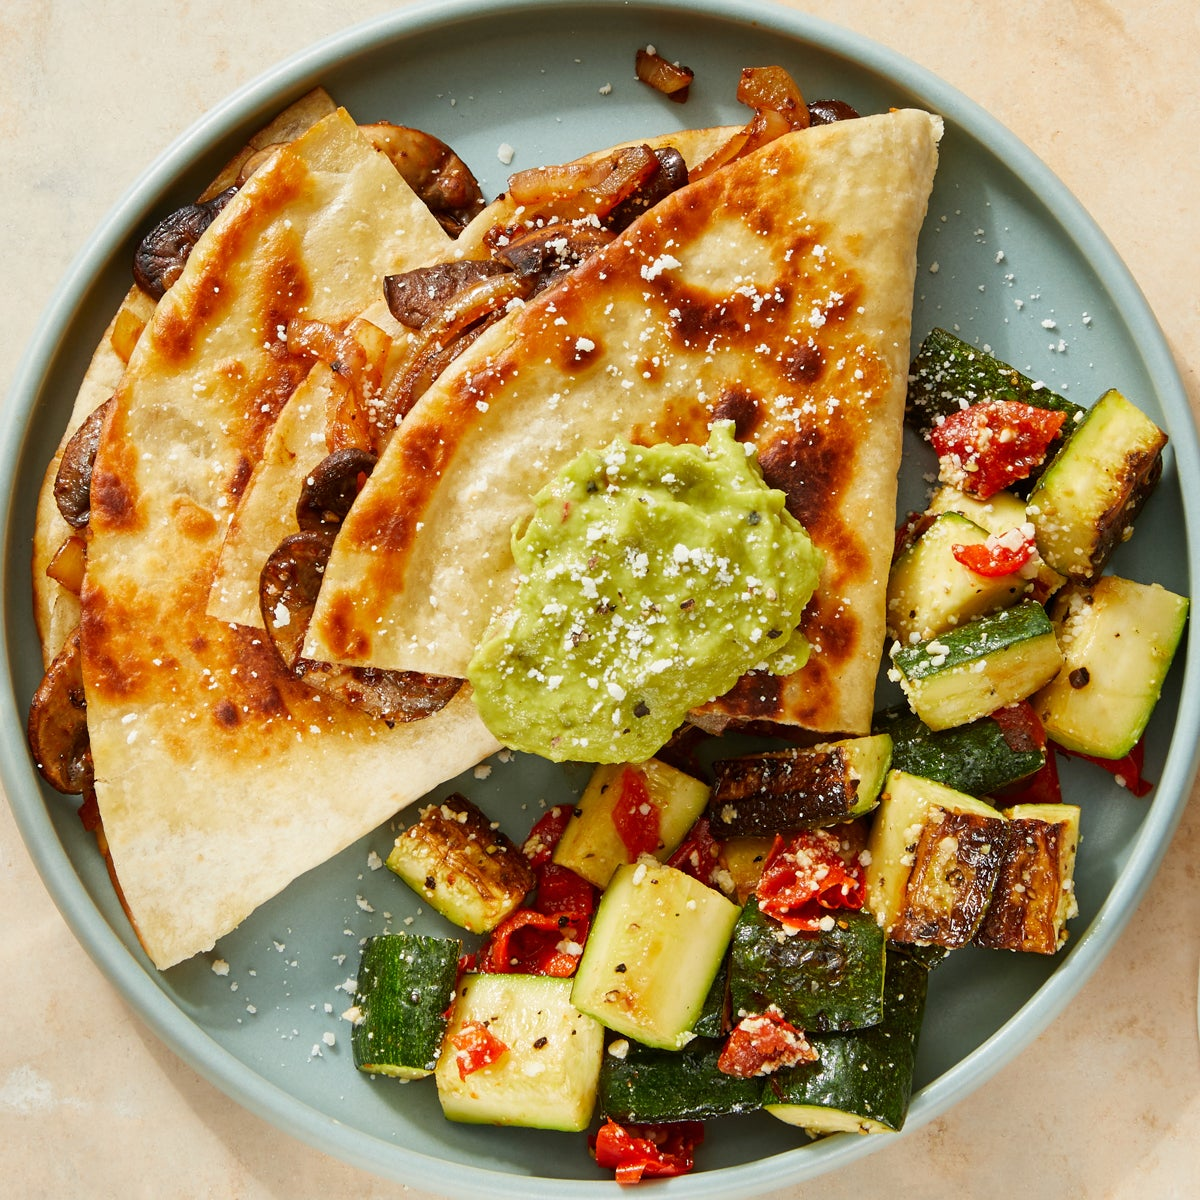 Spicy Vegetable Quesadillas with Guacamole & Dressed Zucchini